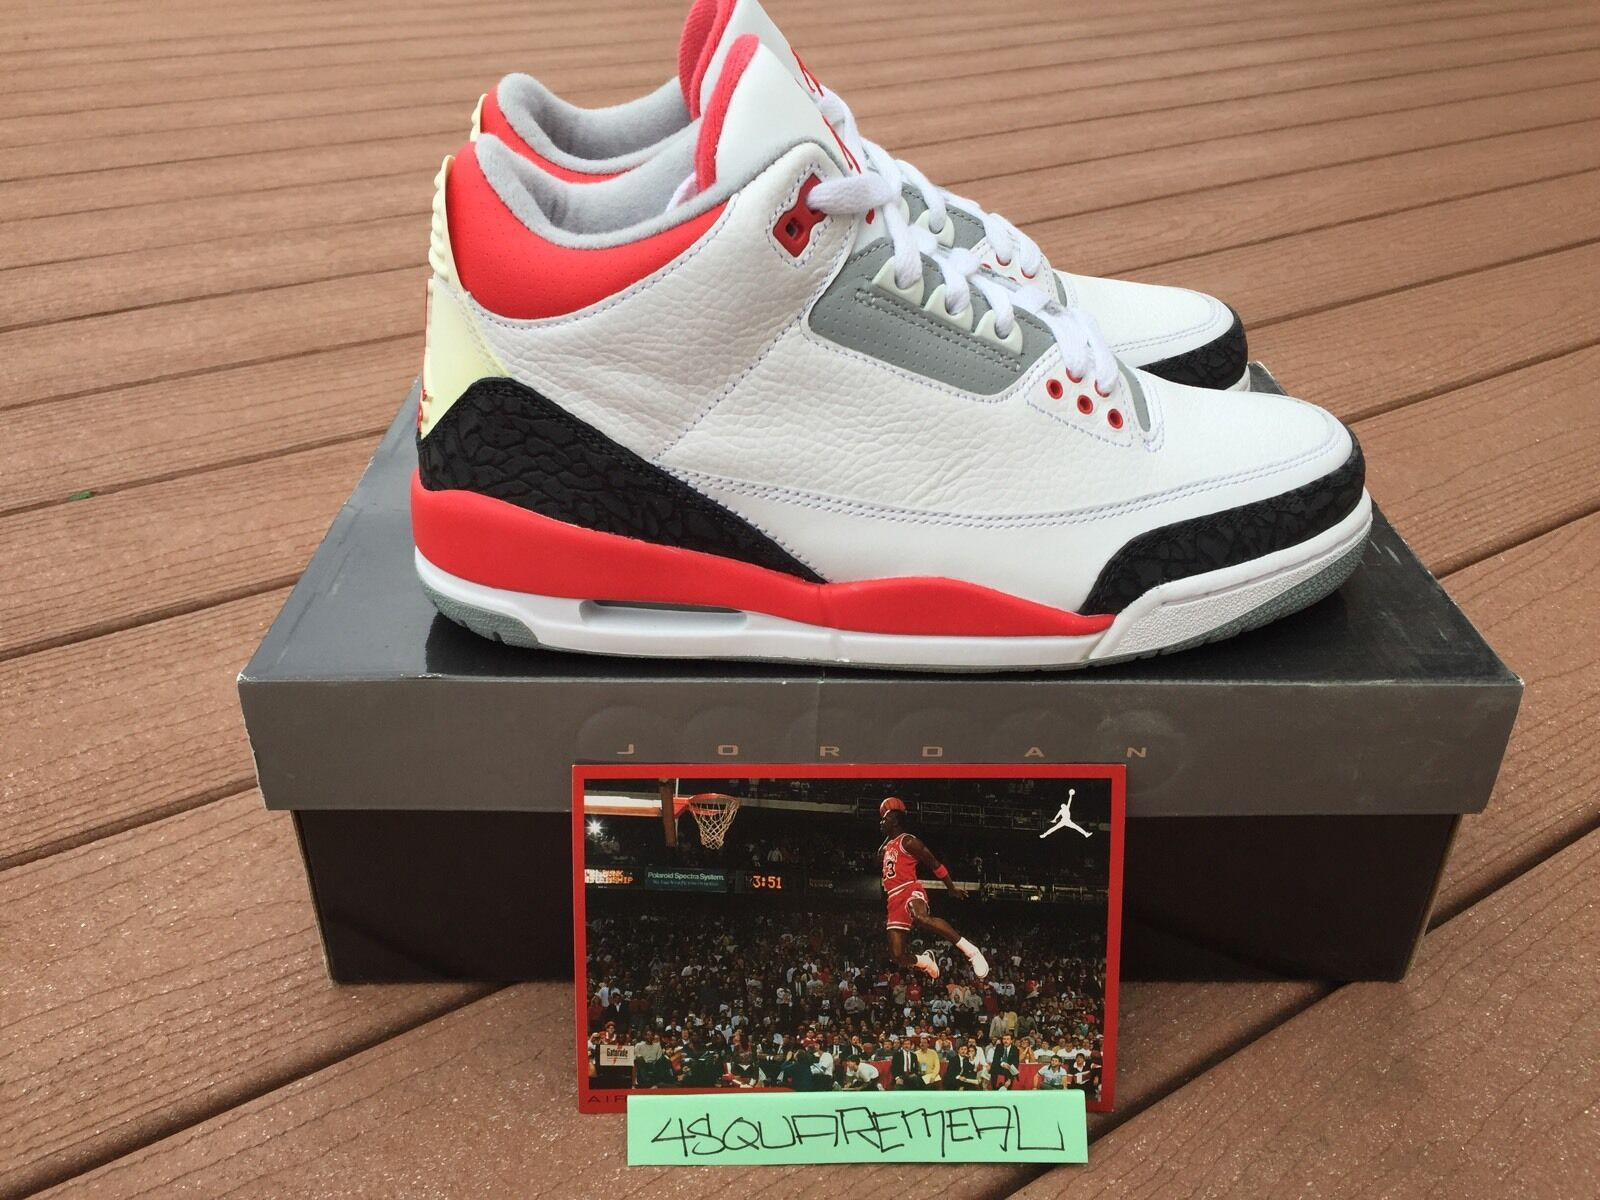 Nike Air Jordan Retro III 3 White Fire Red Black Cement Free Throw Line Tinker Special limited time